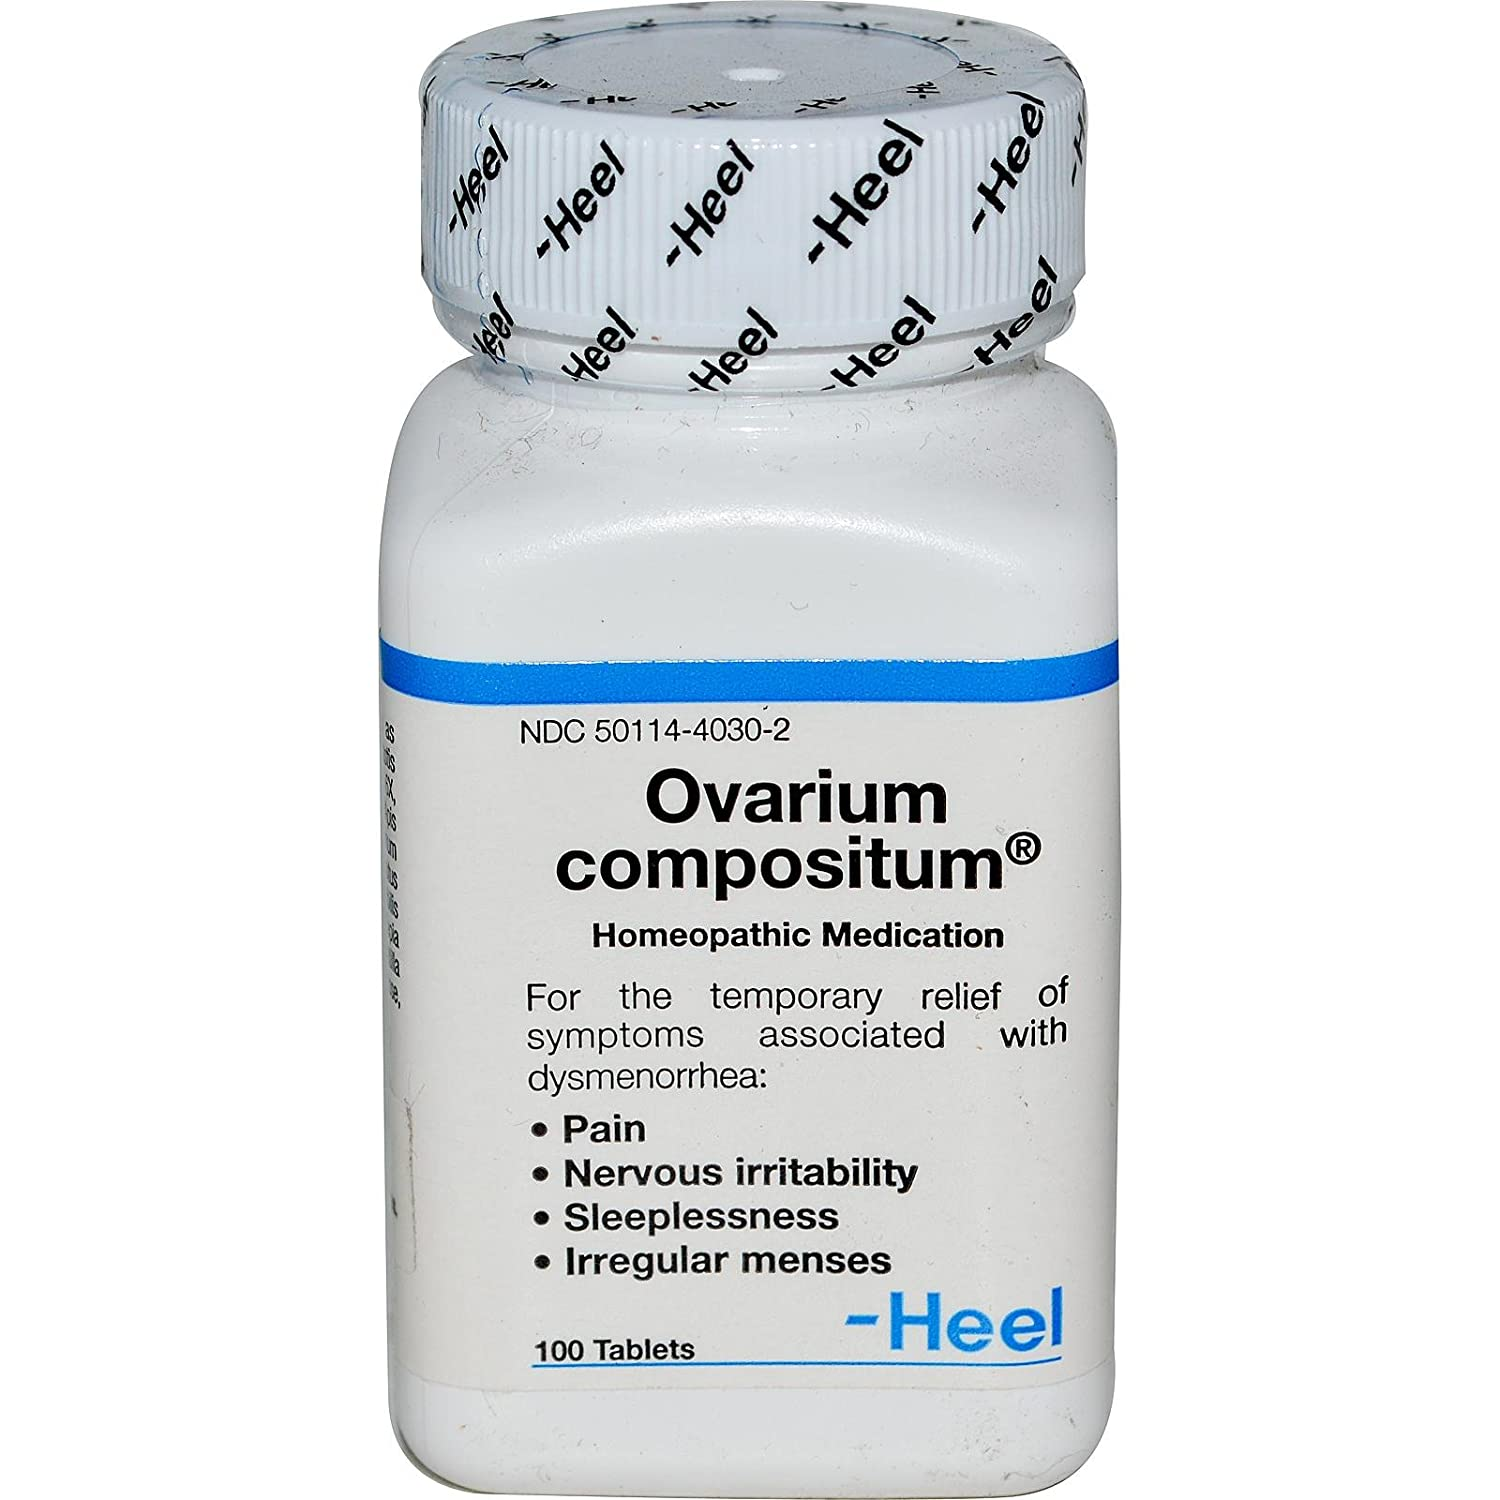 Ovarium Compositum: reviews, prices, instructions for use 1